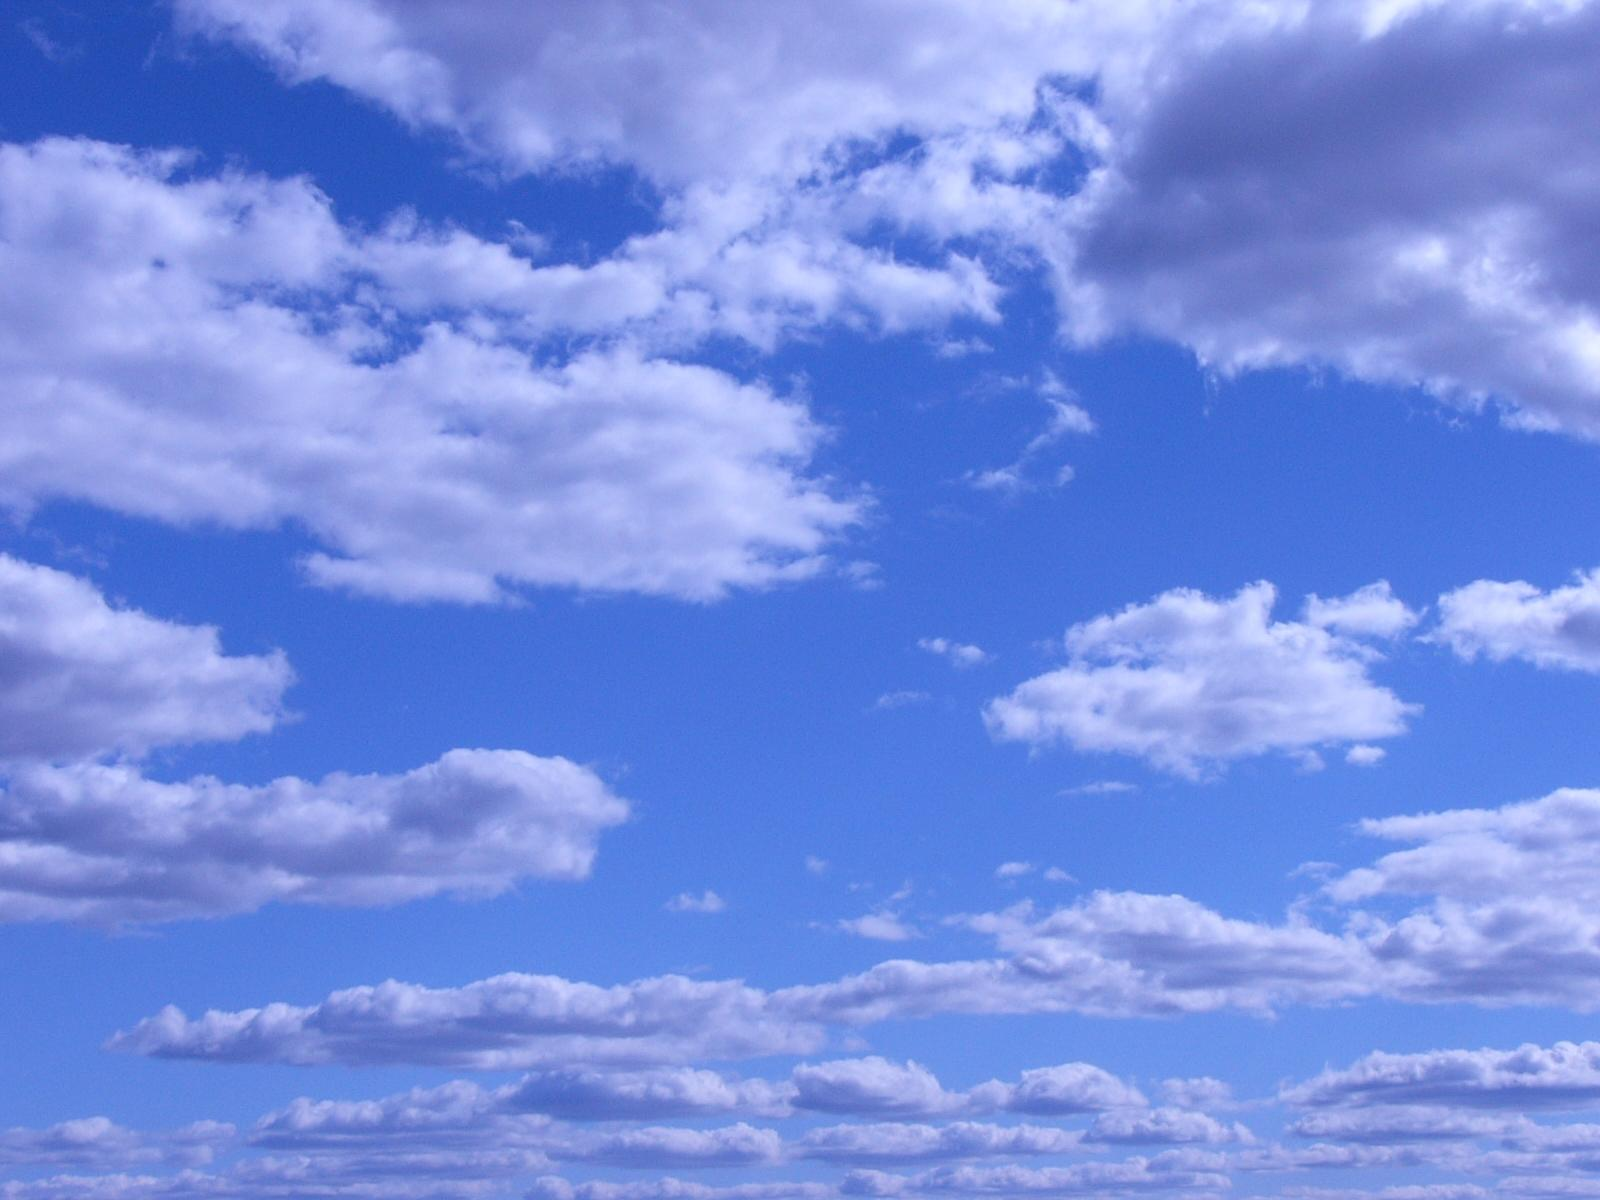 Clouds Wallpapers Images and nature wallpaper Clouds pictures 5628 1600x1200